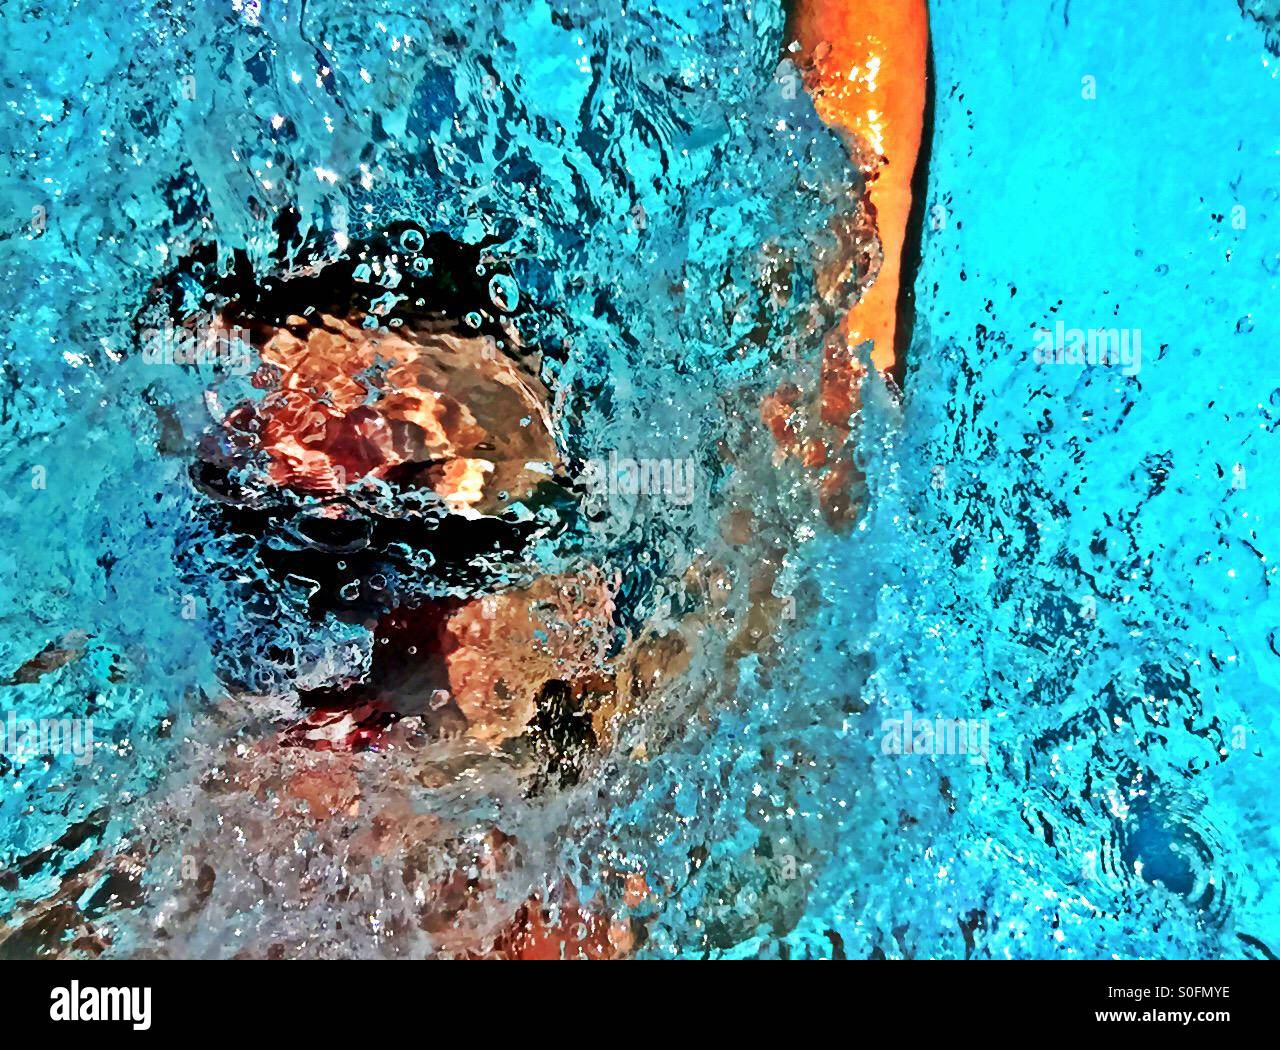 Closeup view above goggled man swimming competition backstroke inundated in wake of water splashes and bubbles. - Stock Image